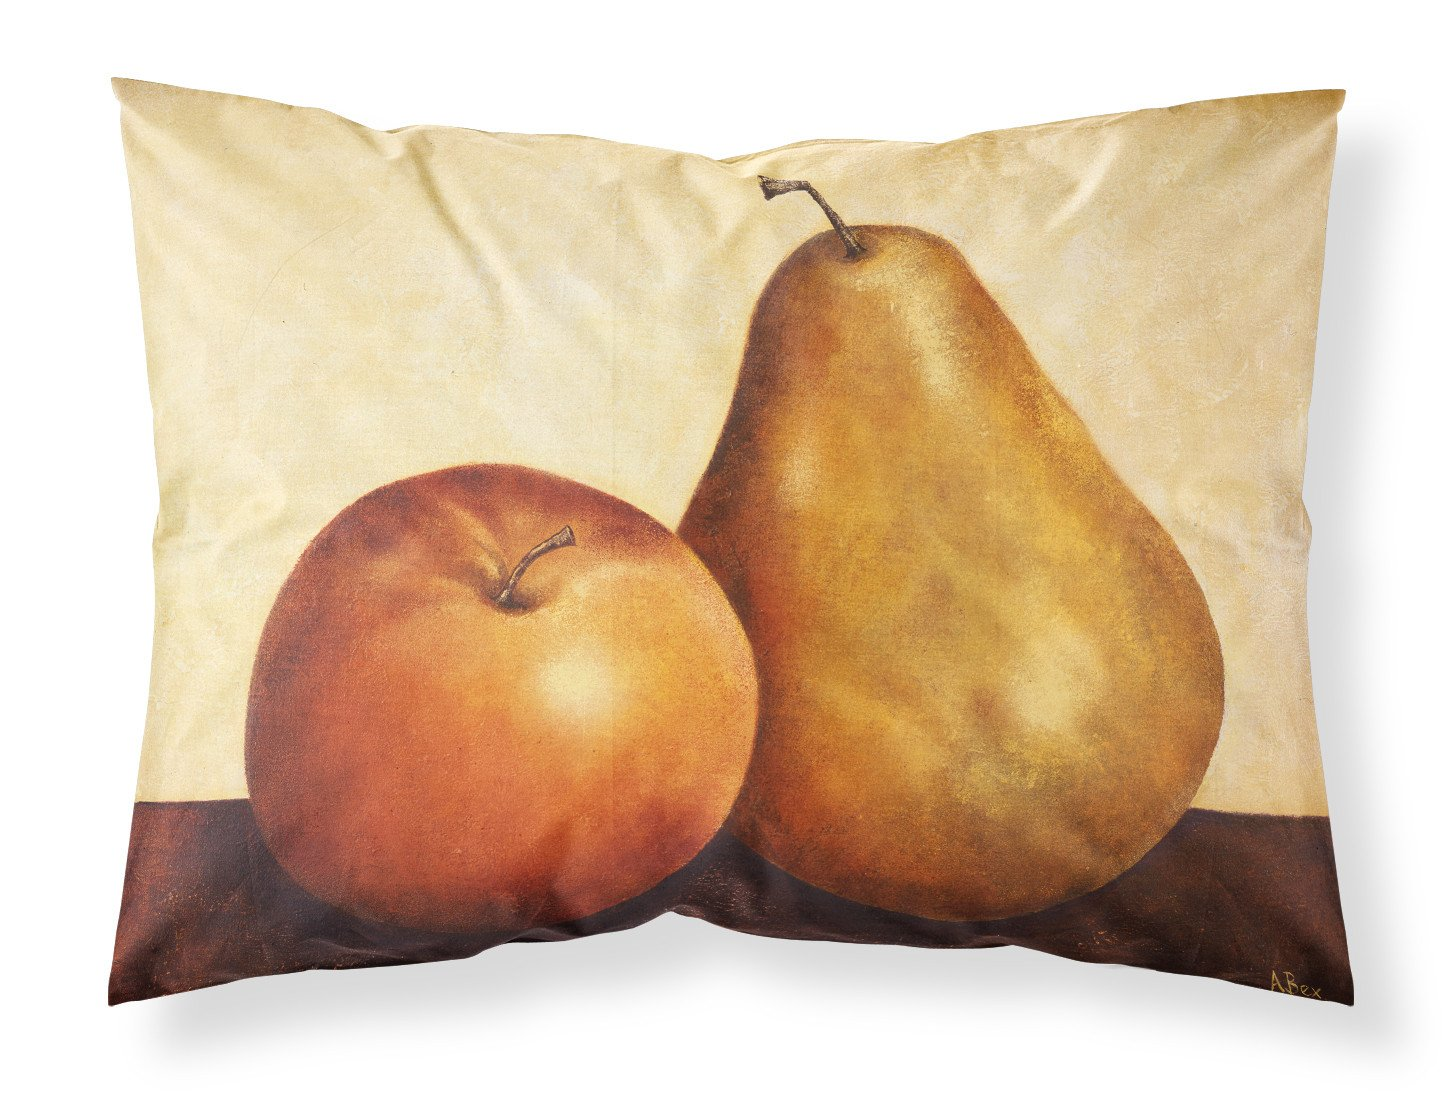 Apple and Pear Fabric Standard Pillowcase BABE0089PILLOWCASE by Caroline's Treasures